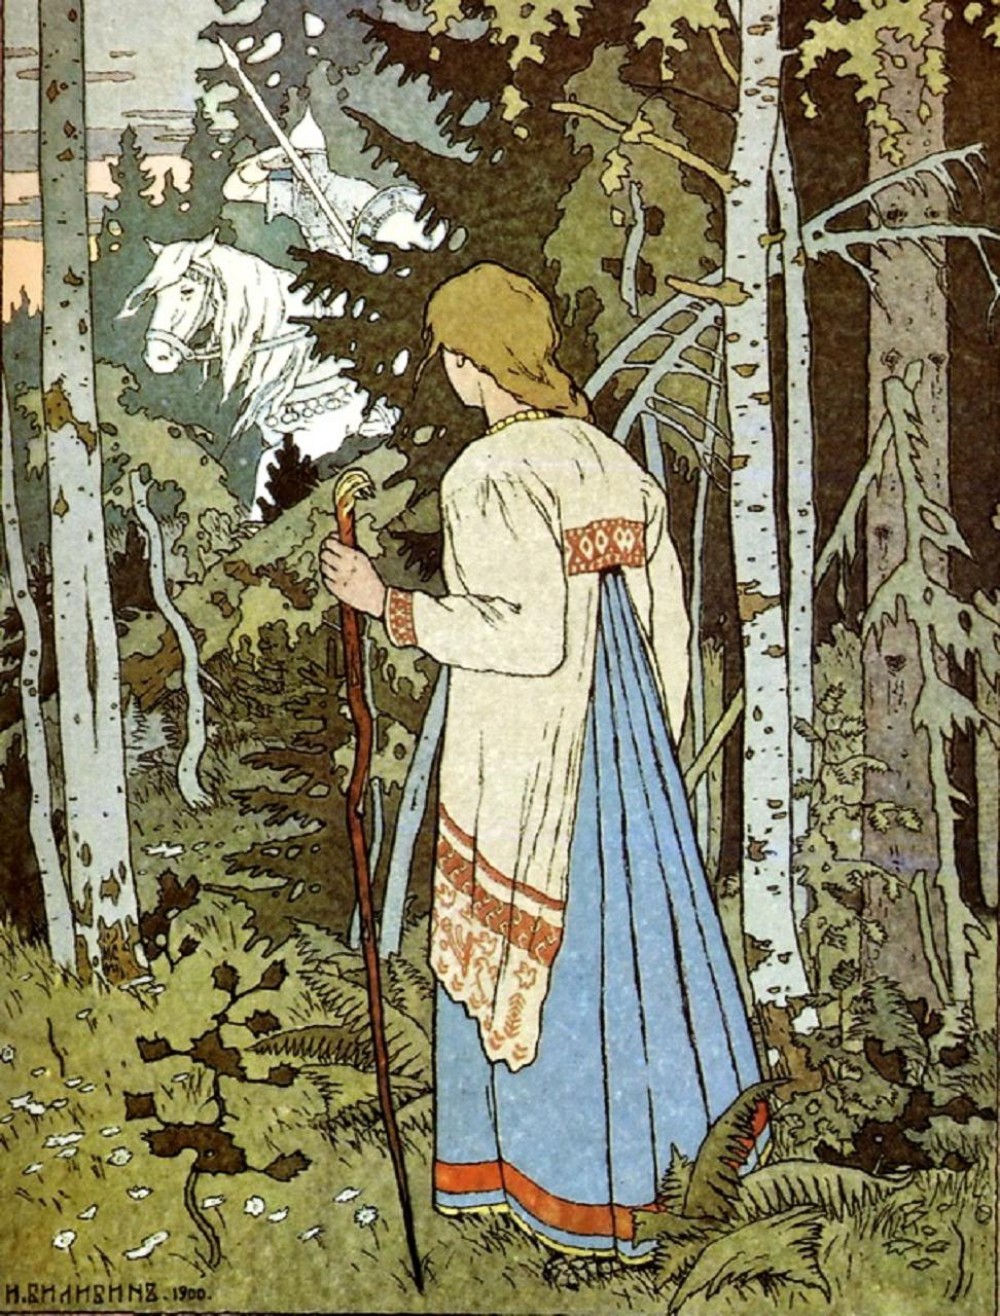 The White Rider: Ivan Bilibin